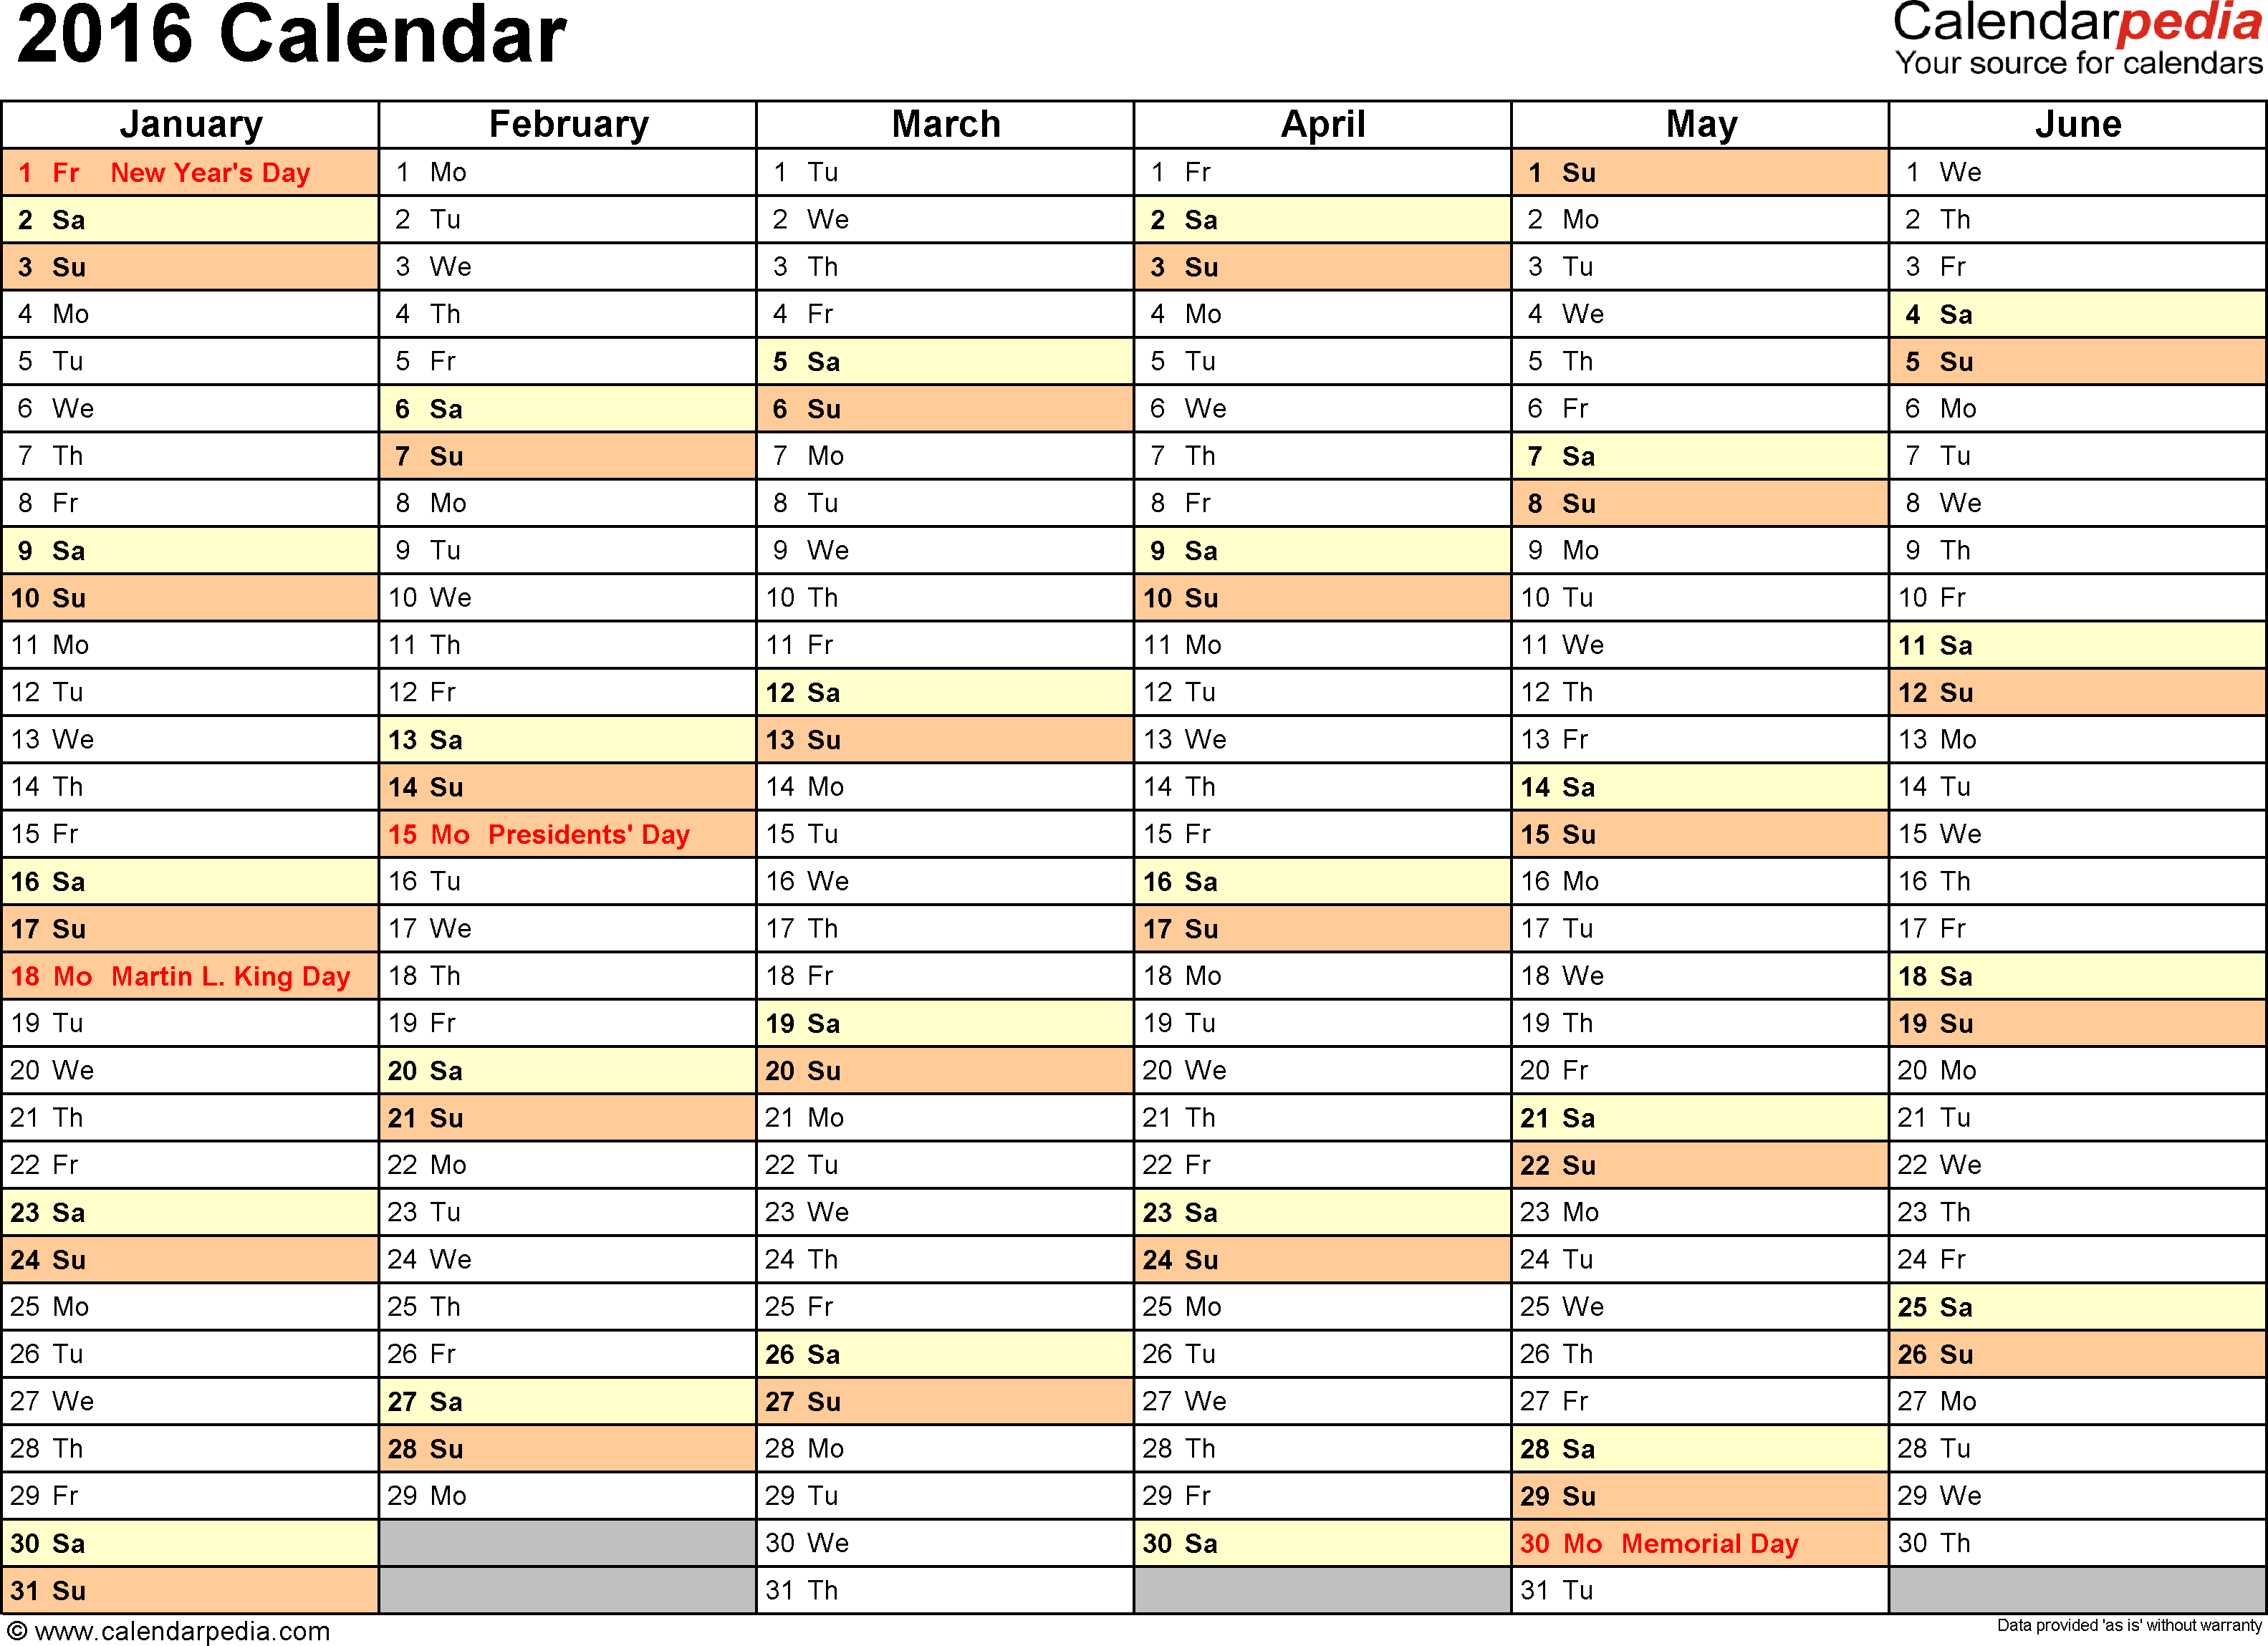 Ediblewildsus  Unusual  Calendar  Download  Free Printable Excel Templates Xls With Engaging Template   Calendar For Excel Months Horizontally  Pages Landscape Orientation With Endearing Pivot Table On Excel Also Formula To Compare Two Columns In Excel In Addition Cell In Excel Definition And How To Convert Pdf File To Excel As Well As Excel Formula For Timesheet Additionally Excel Index Array From Calendarpediacom With Ediblewildsus  Engaging  Calendar  Download  Free Printable Excel Templates Xls With Endearing Template   Calendar For Excel Months Horizontally  Pages Landscape Orientation And Unusual Pivot Table On Excel Also Formula To Compare Two Columns In Excel In Addition Cell In Excel Definition From Calendarpediacom